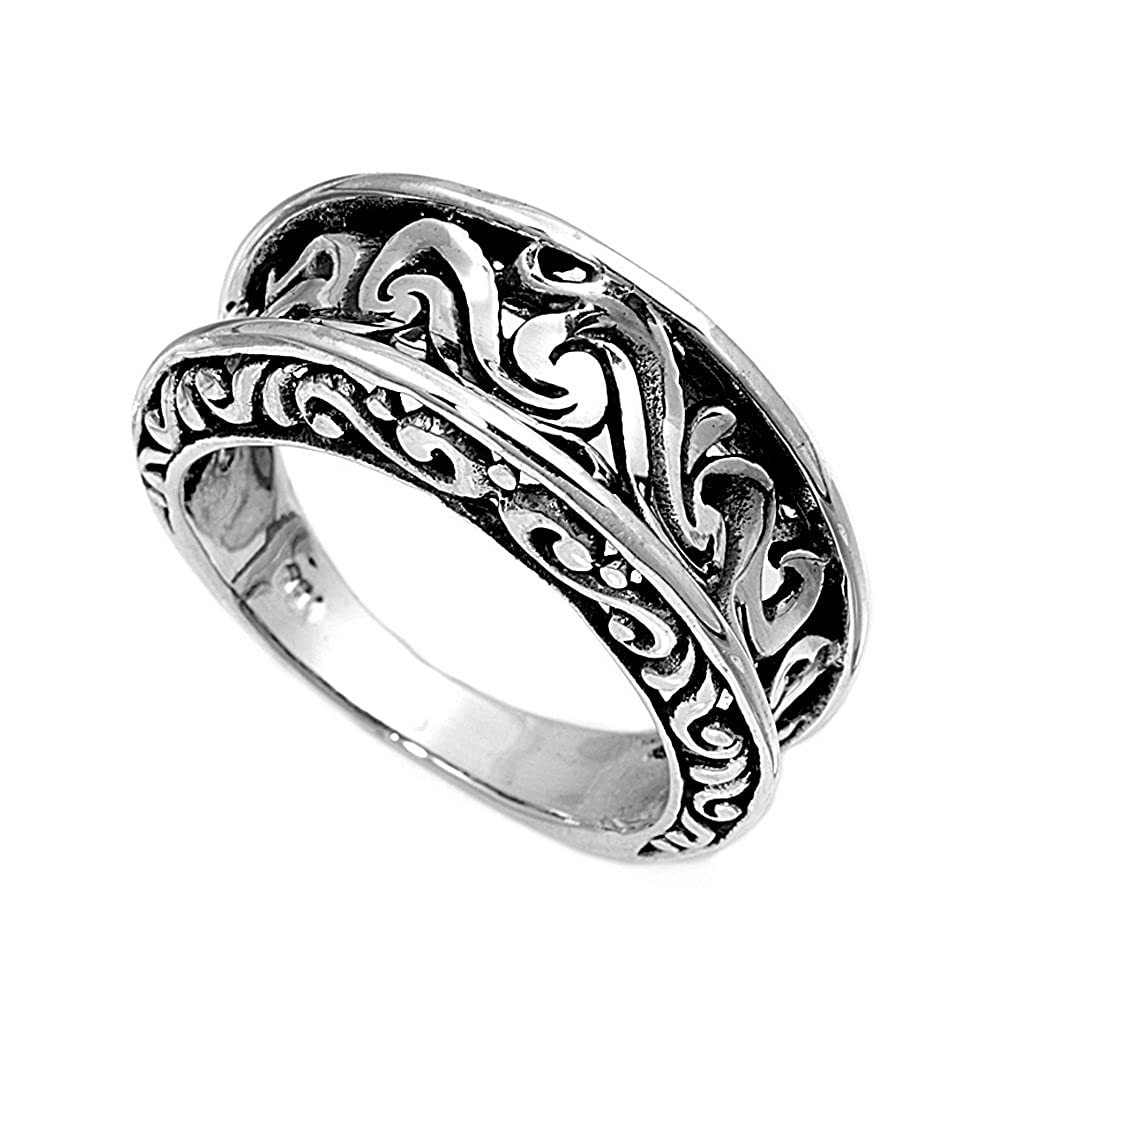 Princess Kylie 925 Sterling Silver Abstract Filigree Design Ring